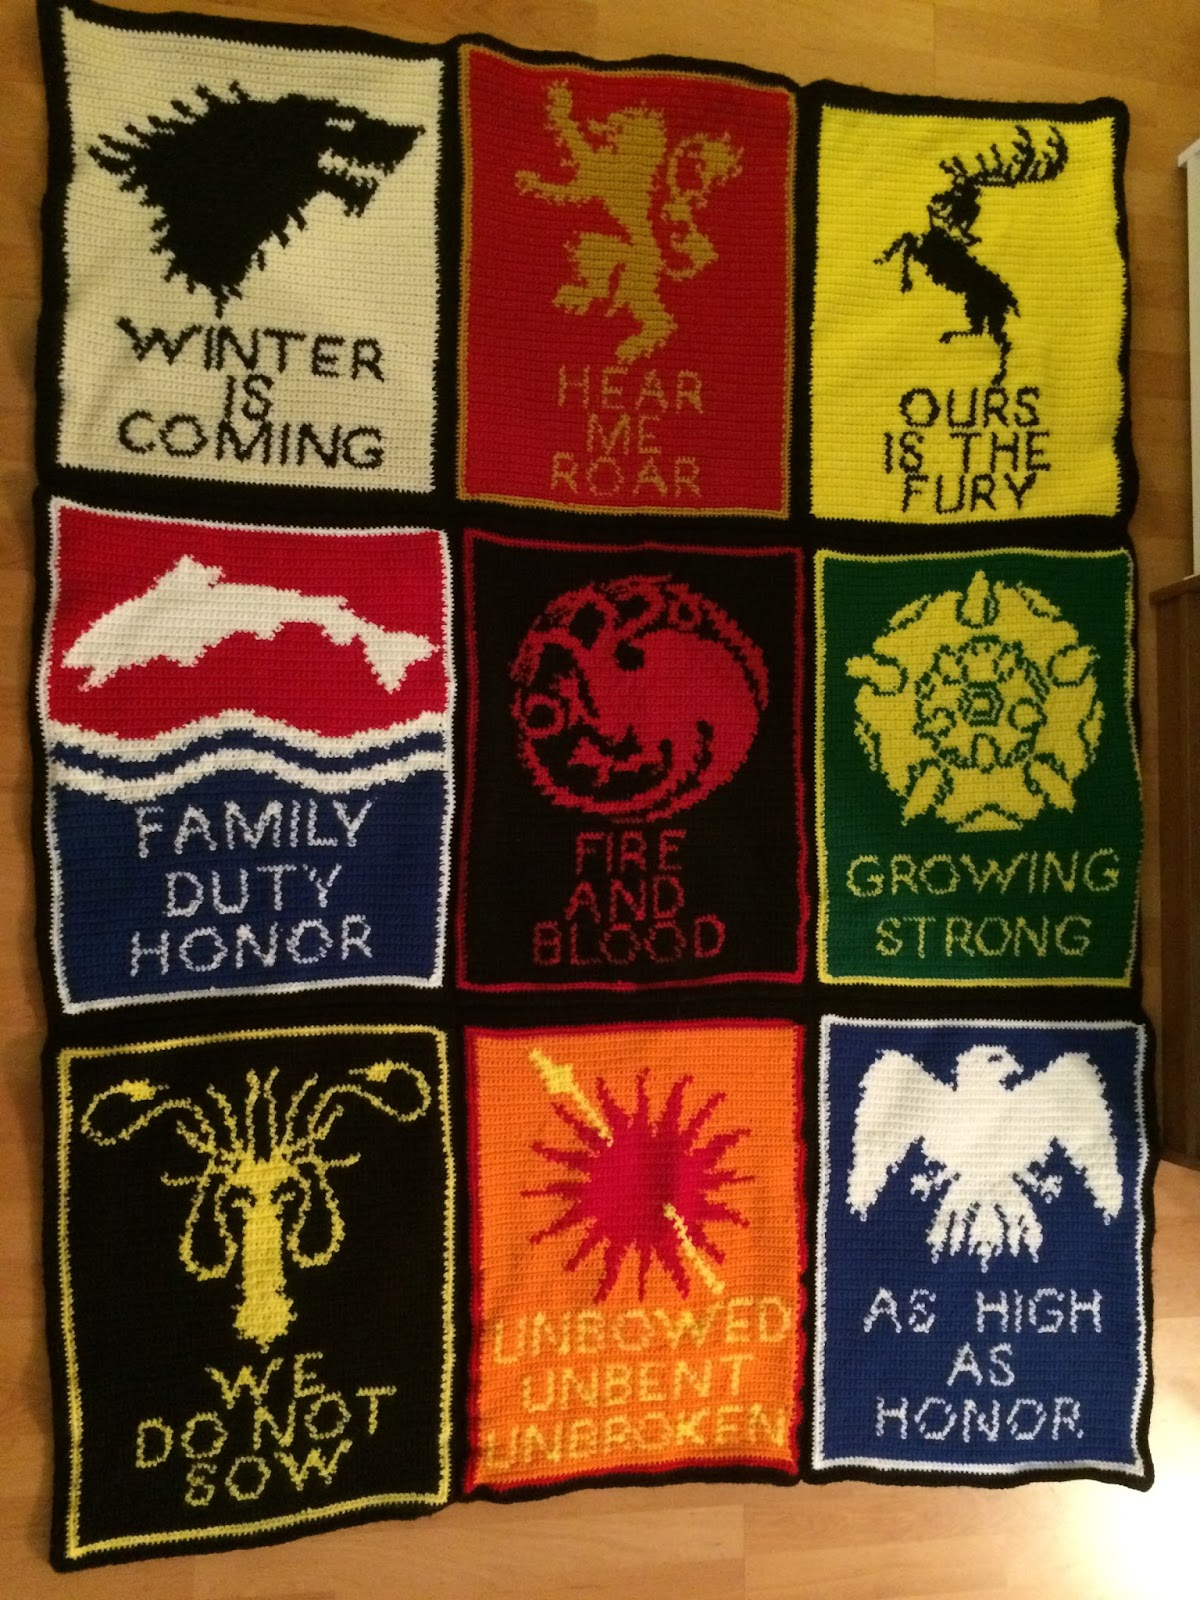 Free Crochet Pattern Game Of Thrones : Vancouver Crafty Geeks: Game of Thrones Crochet Blanket